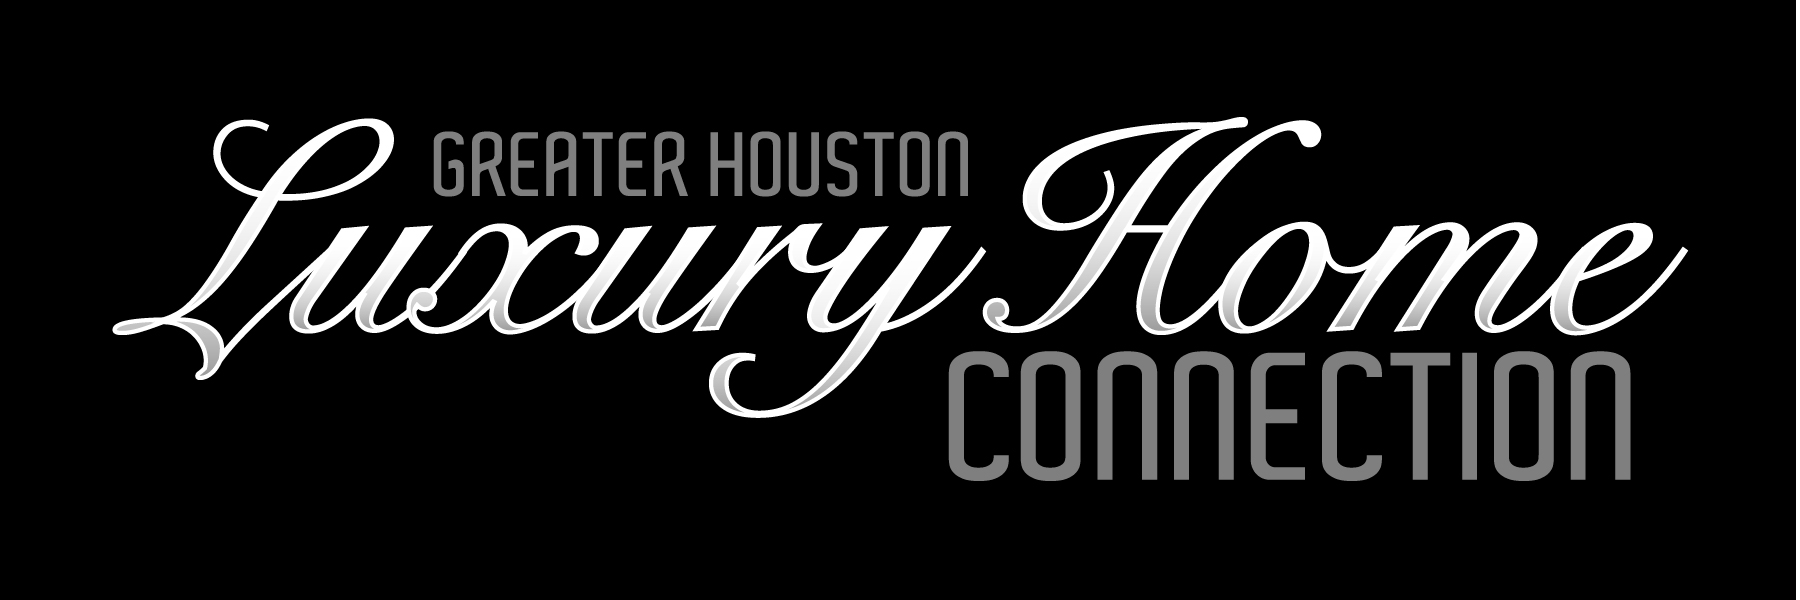 Greater Houston Luxury Home Connection - www.HoustonTxRealEstate.com